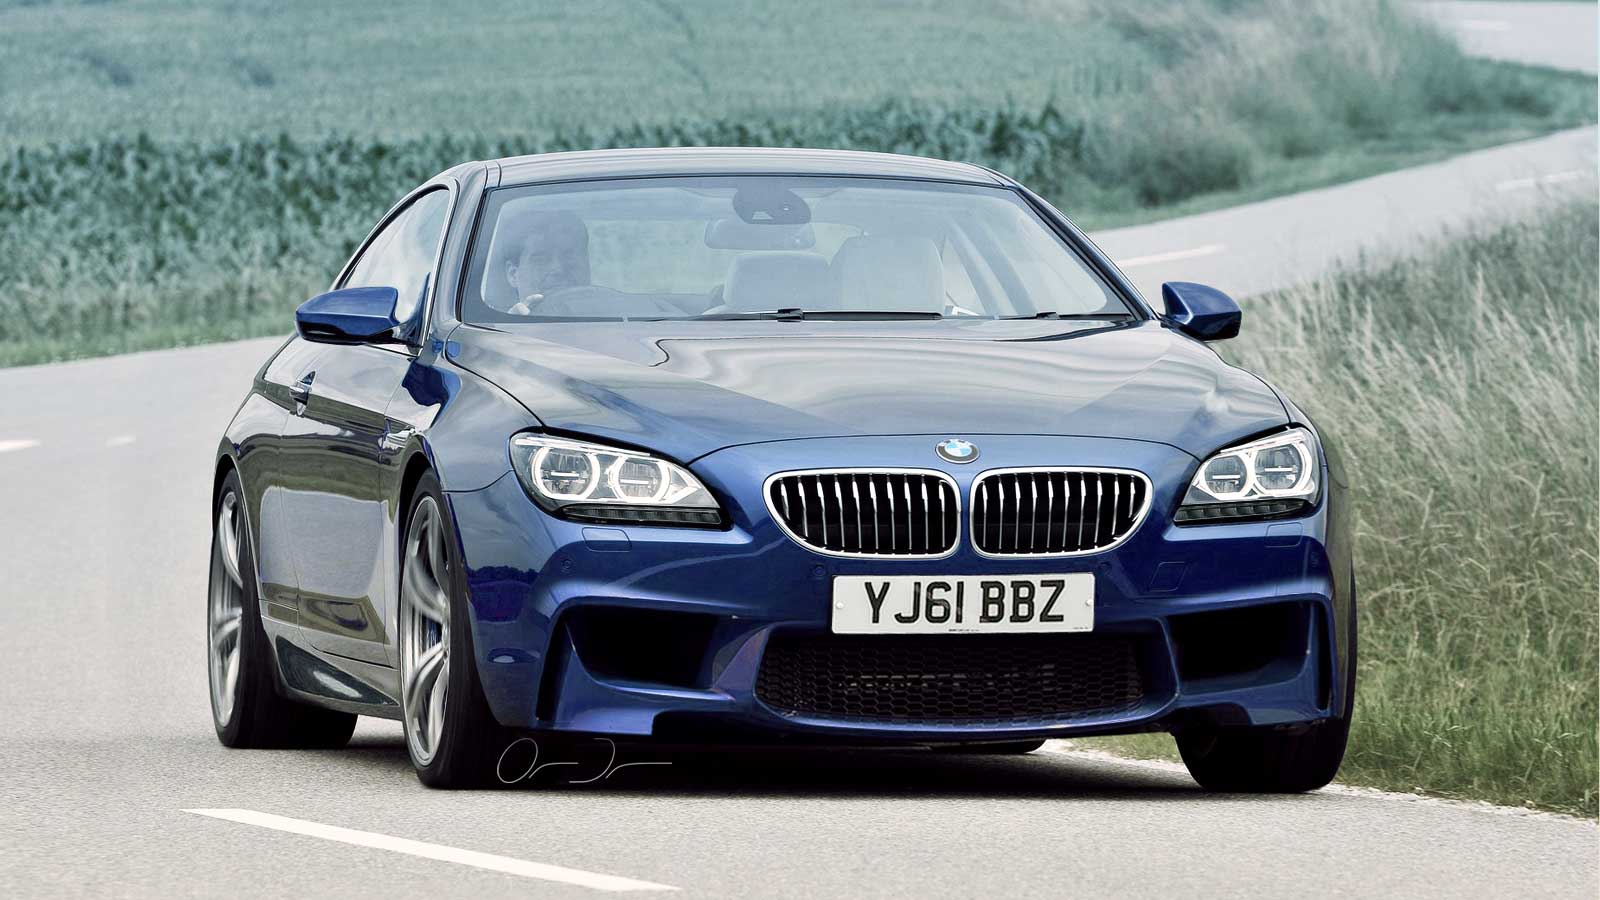 2011 Bmw M6 F12 Pictures Information And Specs Auto